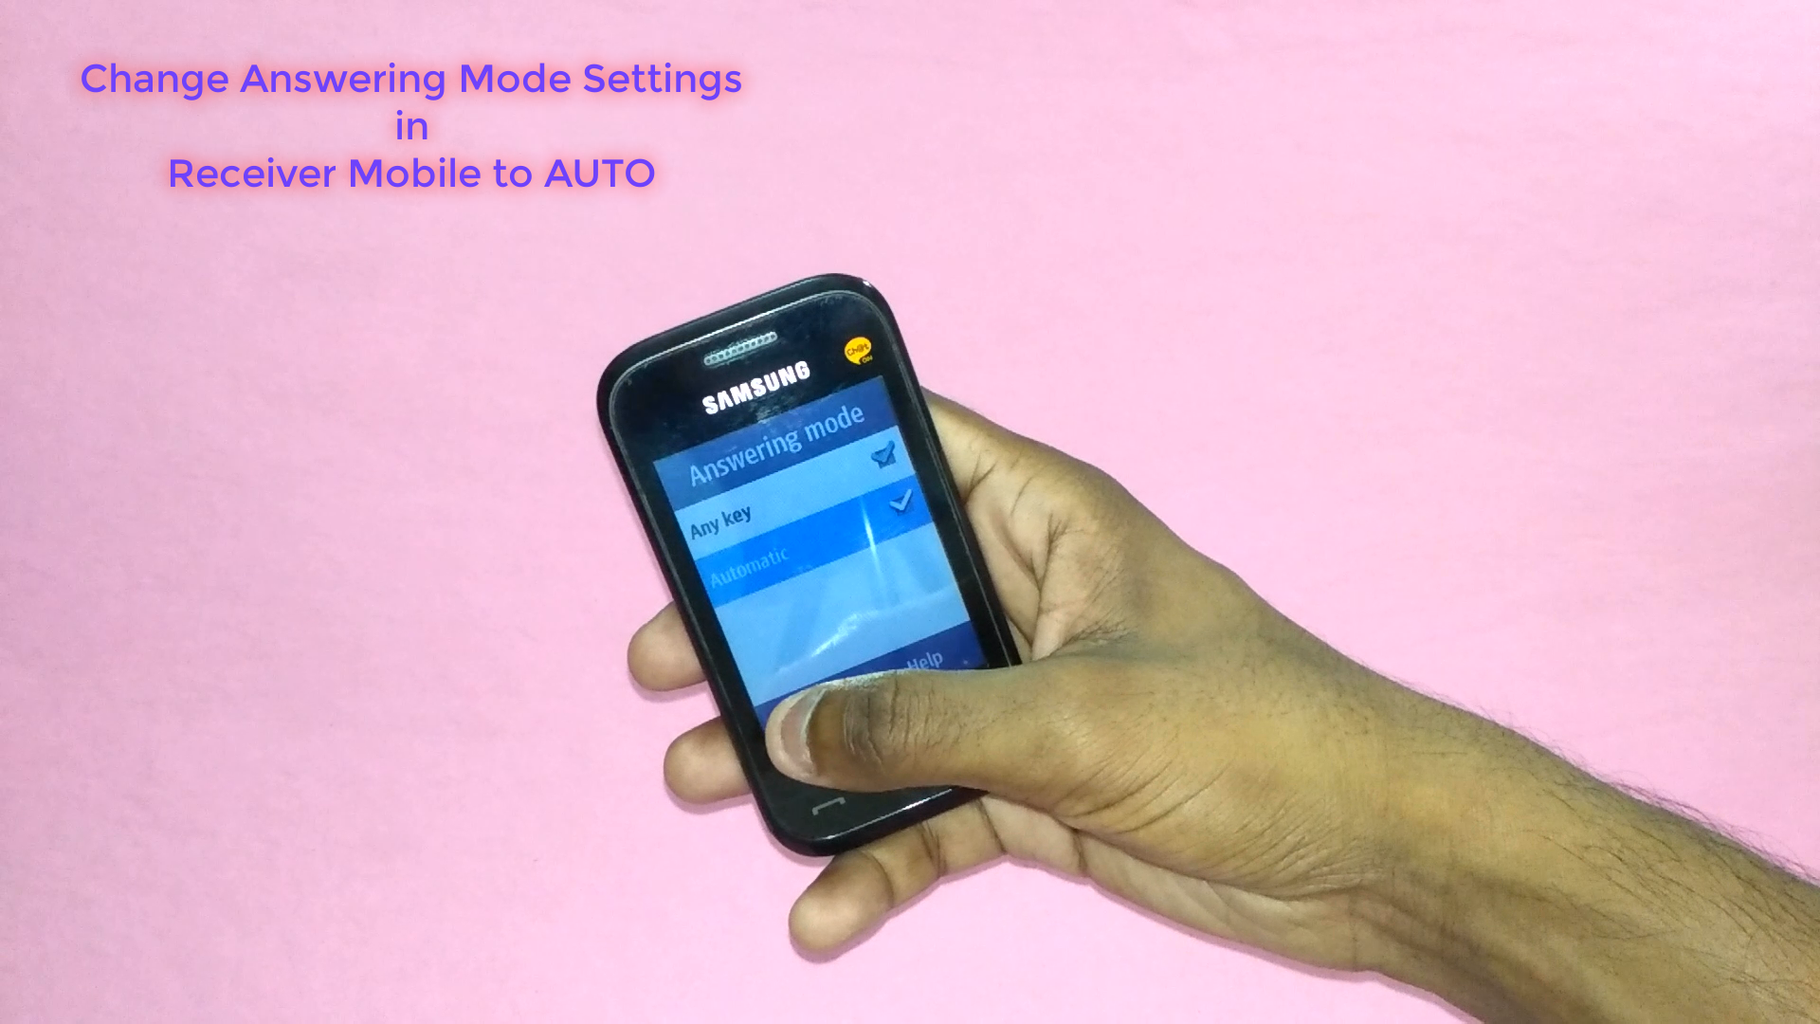 Settings : Change Answering Mode Settings in Receiver Module to AUTO (Headset Mode)